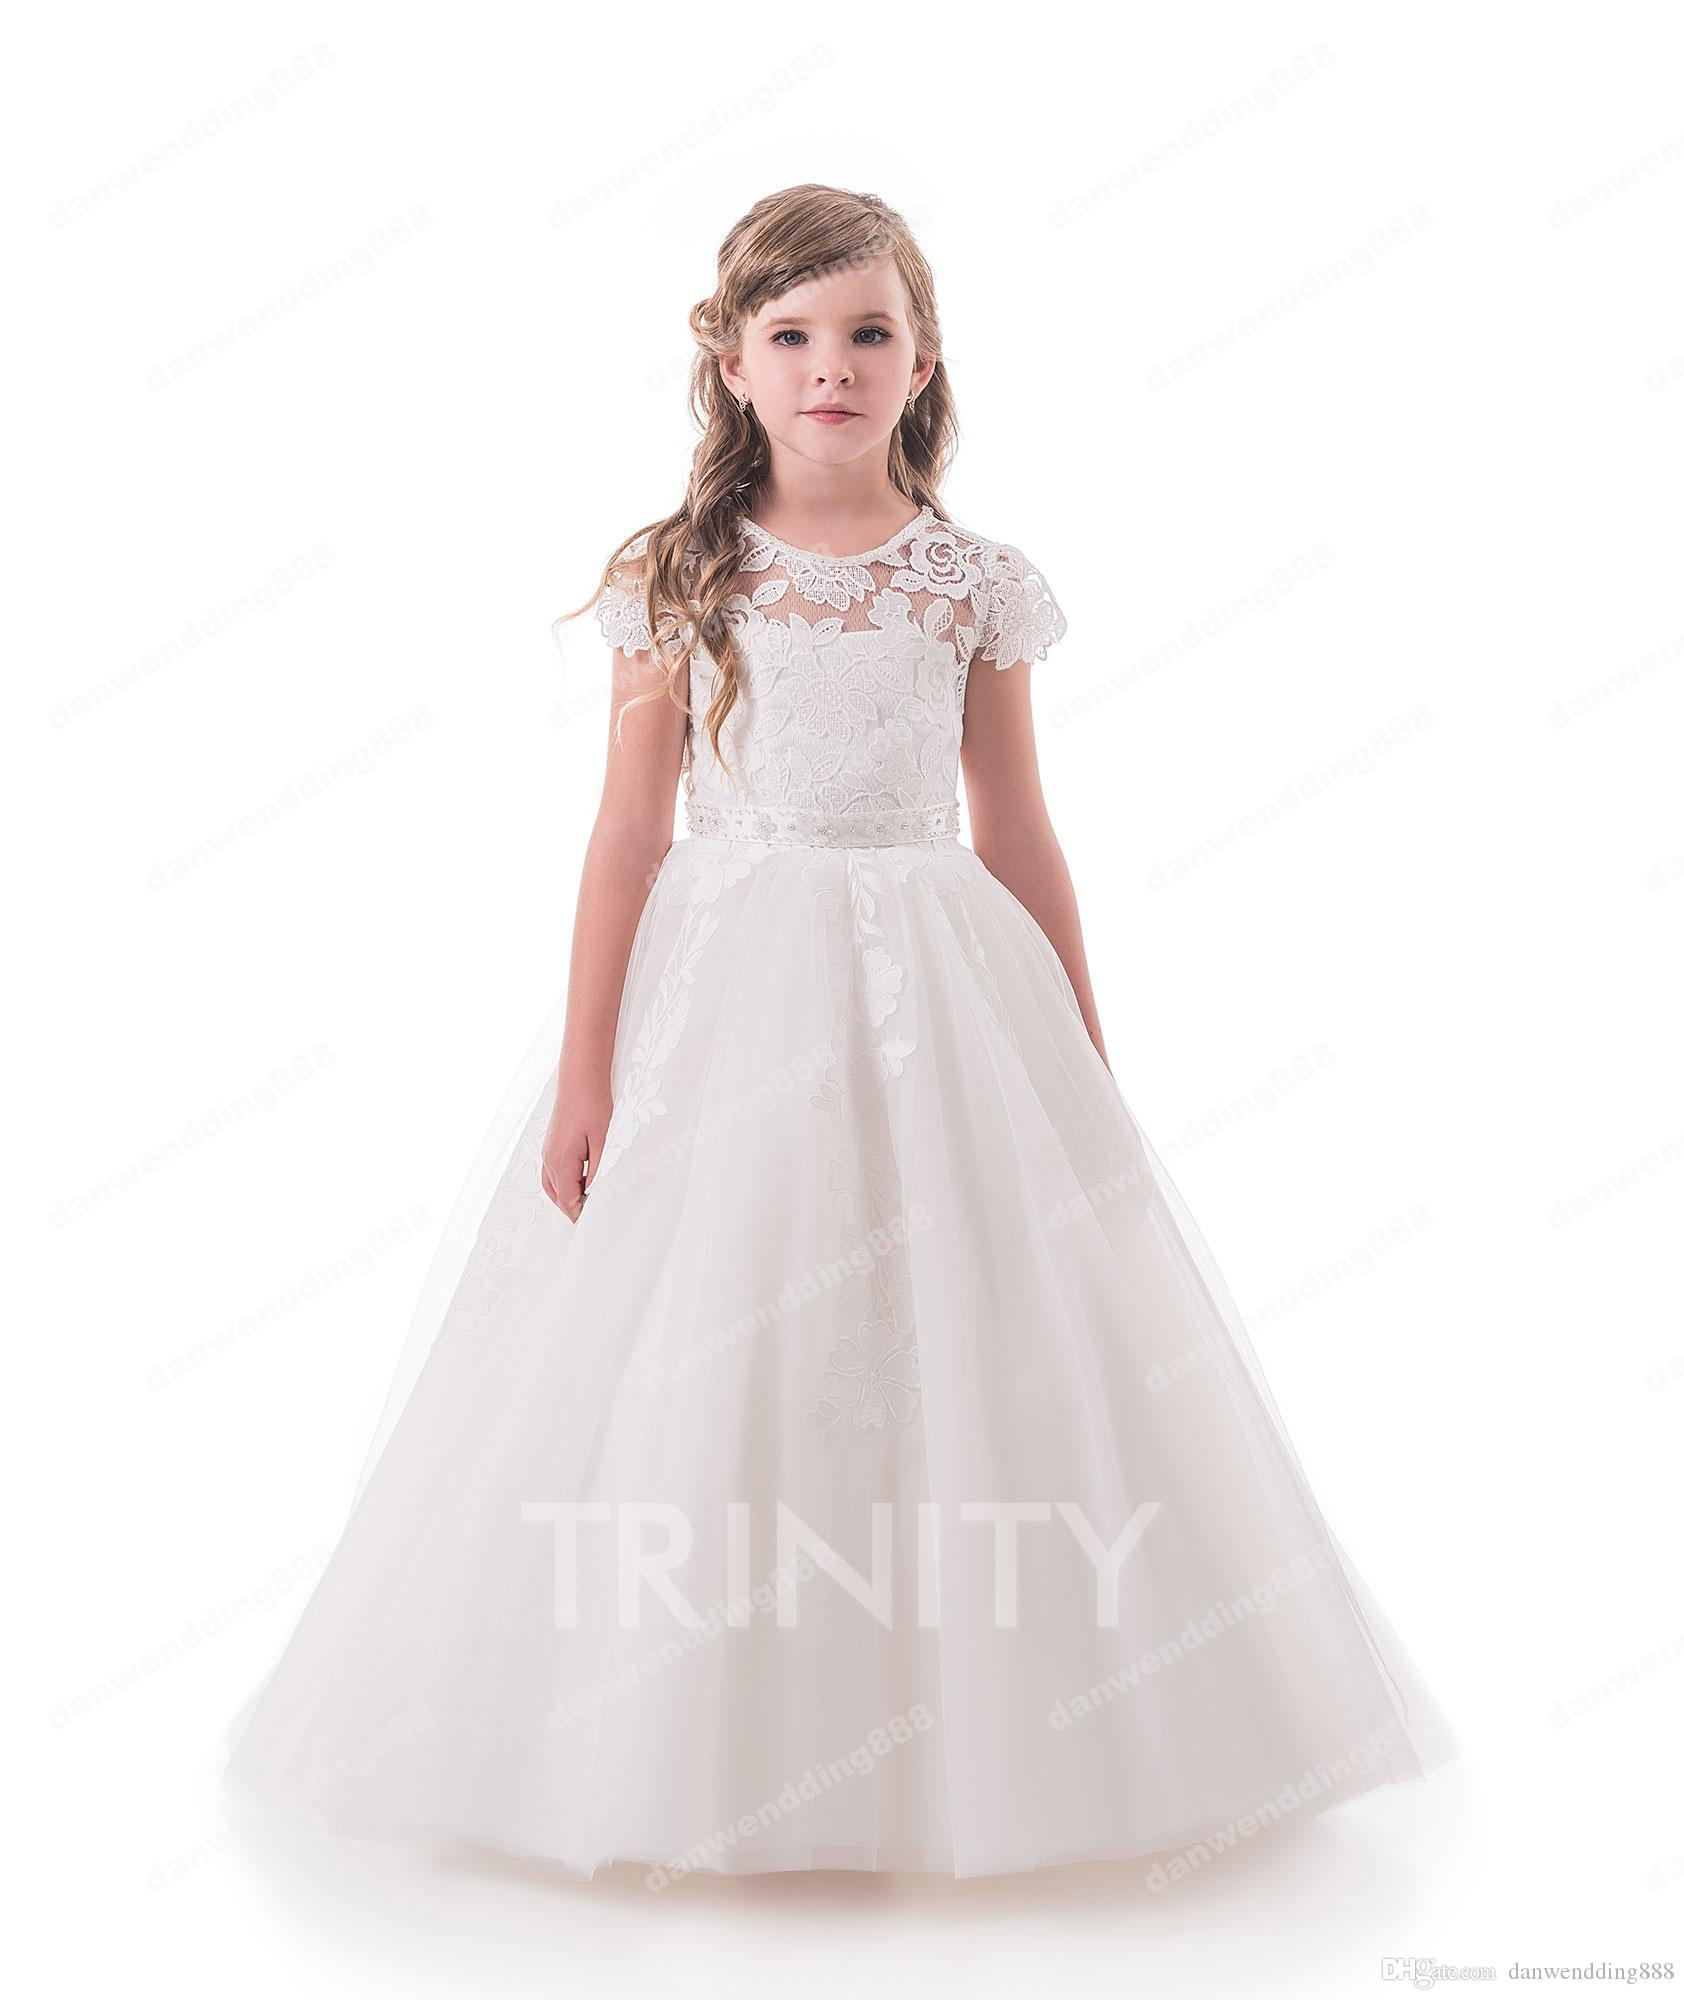 c3898065c4 Beauty Ivory Lace Tulle Jewel Applique Flower Girl Dresses Princess Dresses  Girl S Pageant Dresses Custom Made Size 2 6 8 10 12 14 KF327249 Girl Party  ...